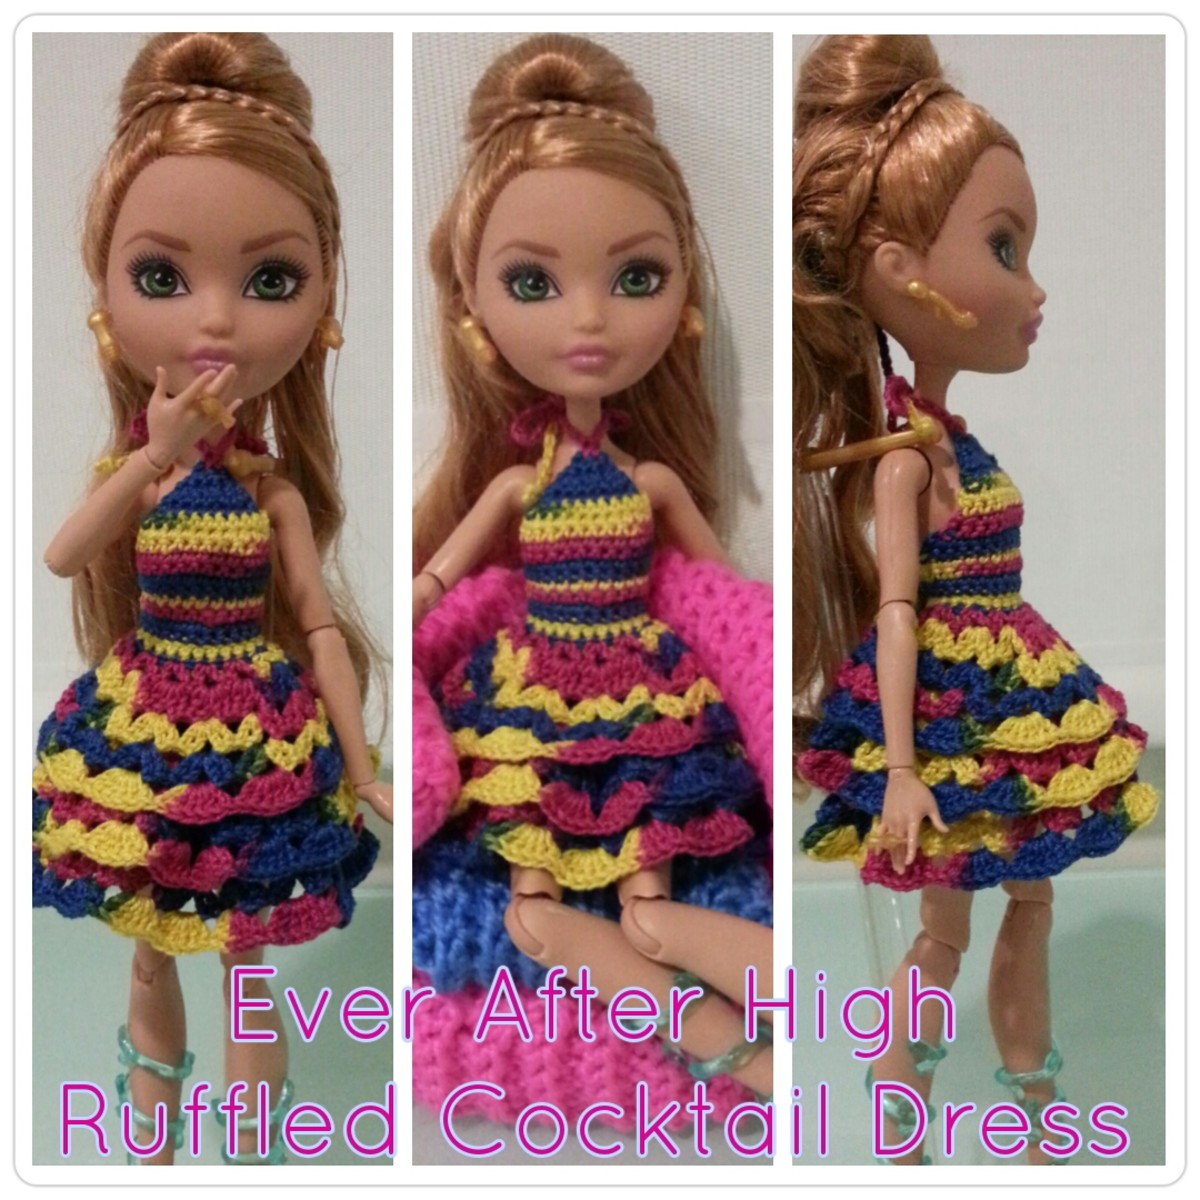 Ever After High Ruffled Cocktail Dress